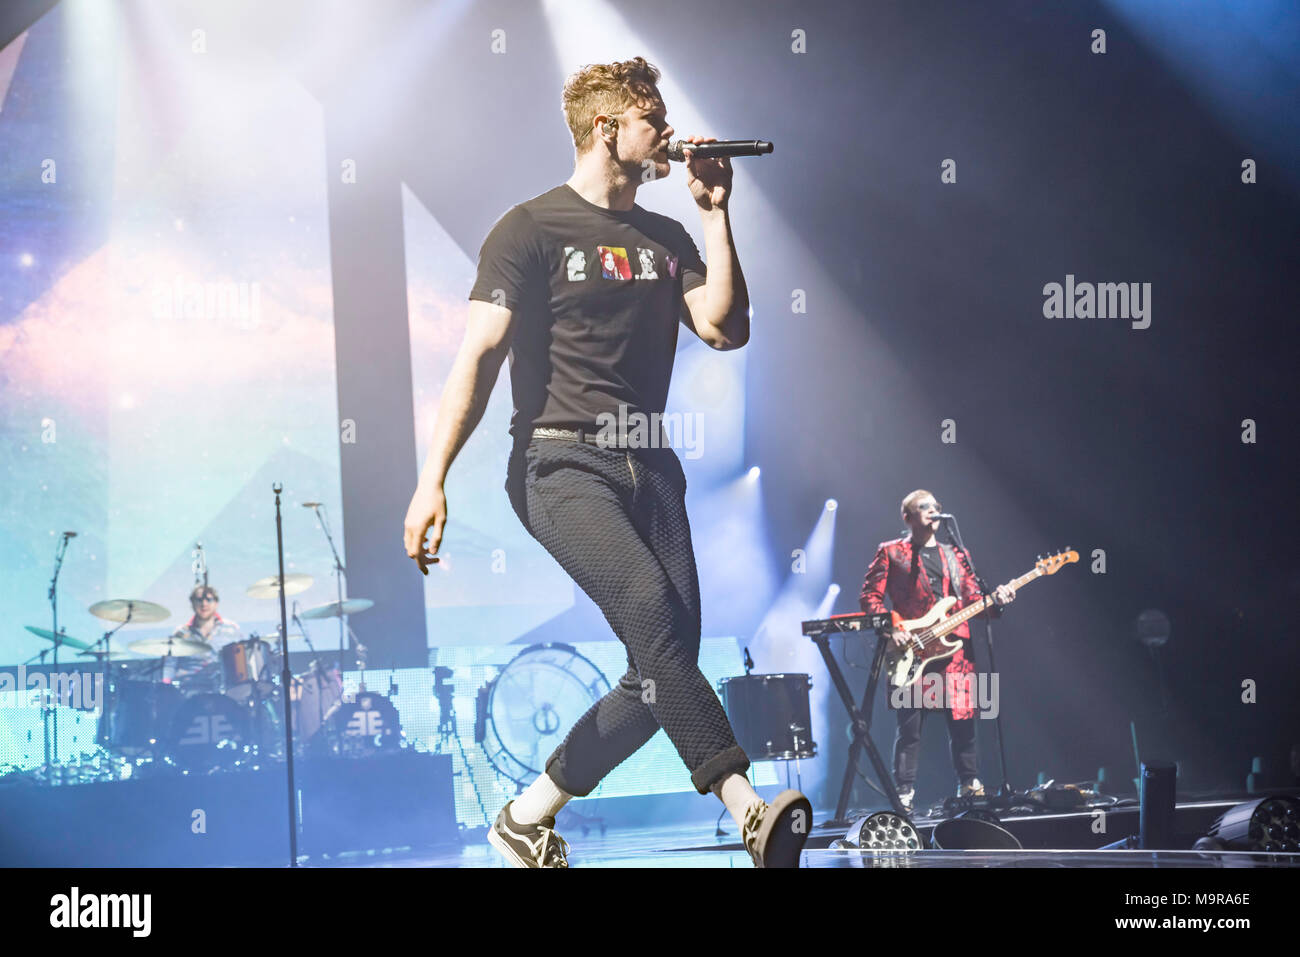 Imagine Dragons perform to an adoring Glasgow crowd at the SSE Hydro, big performance from band and crowd. - Stock Image